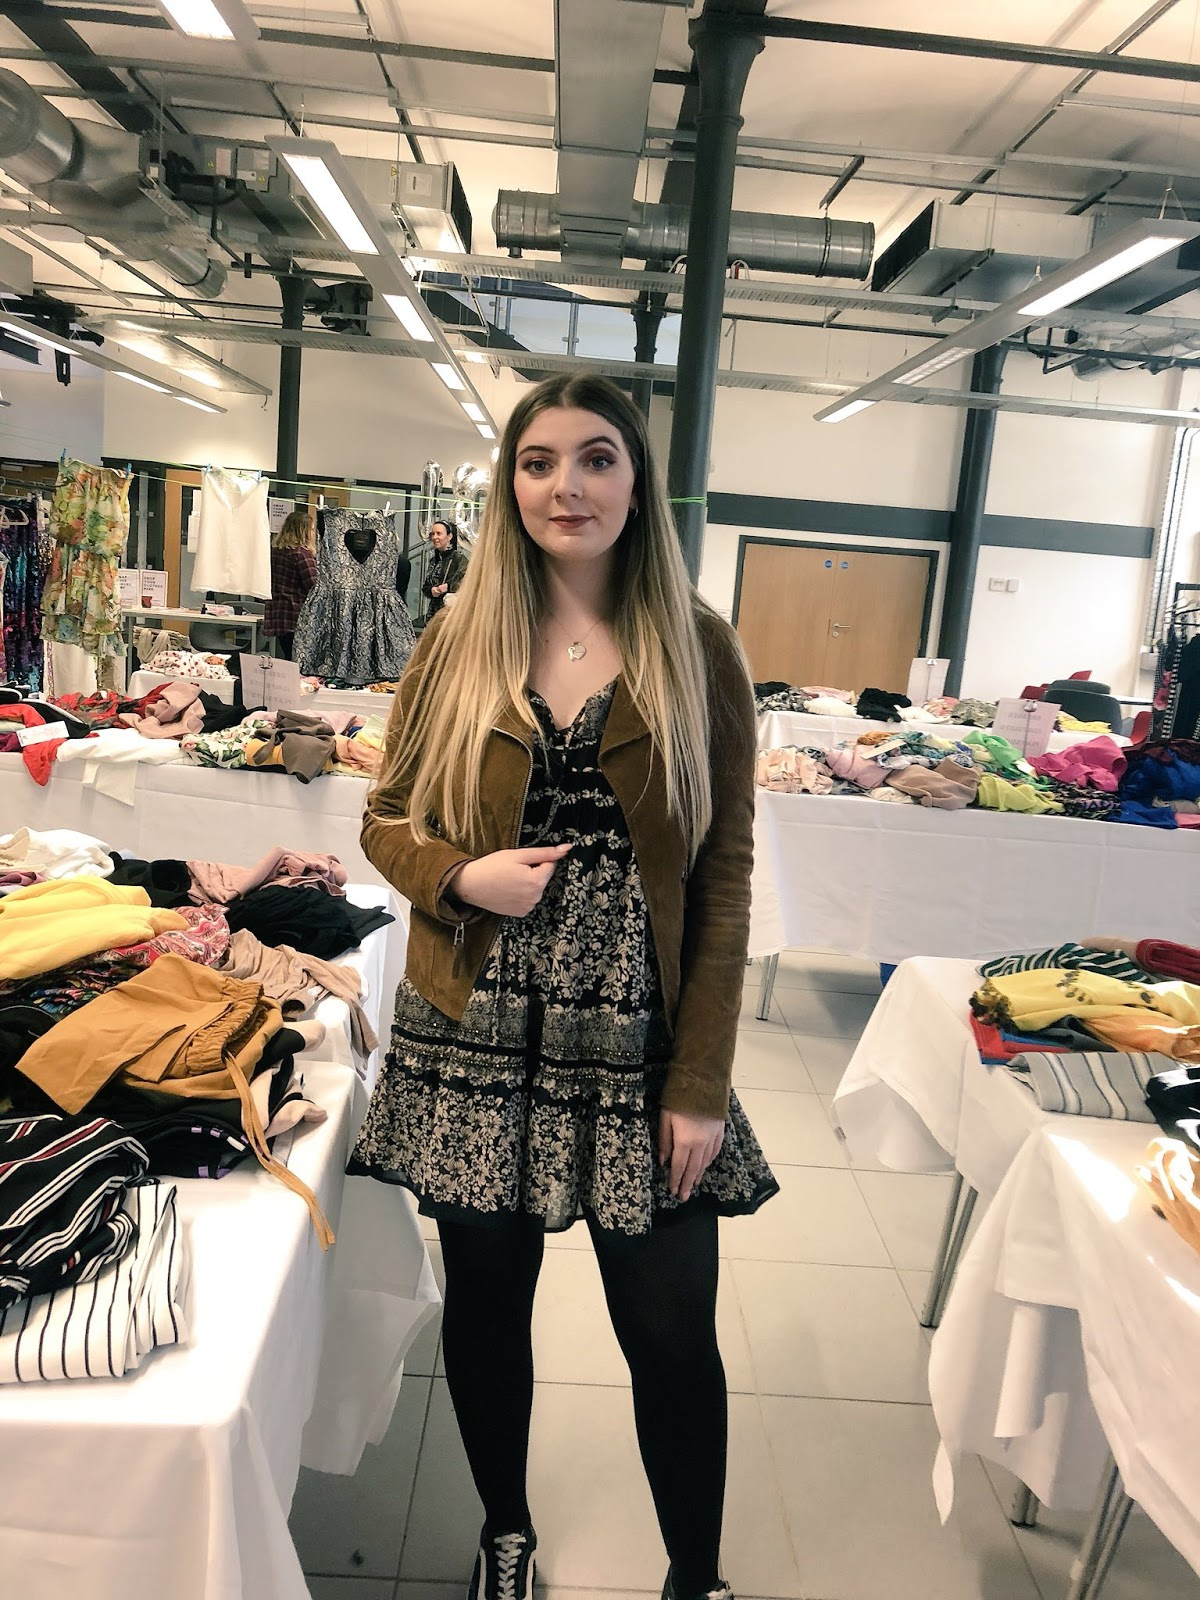 Abbey at Big Burnley Clothes Swap